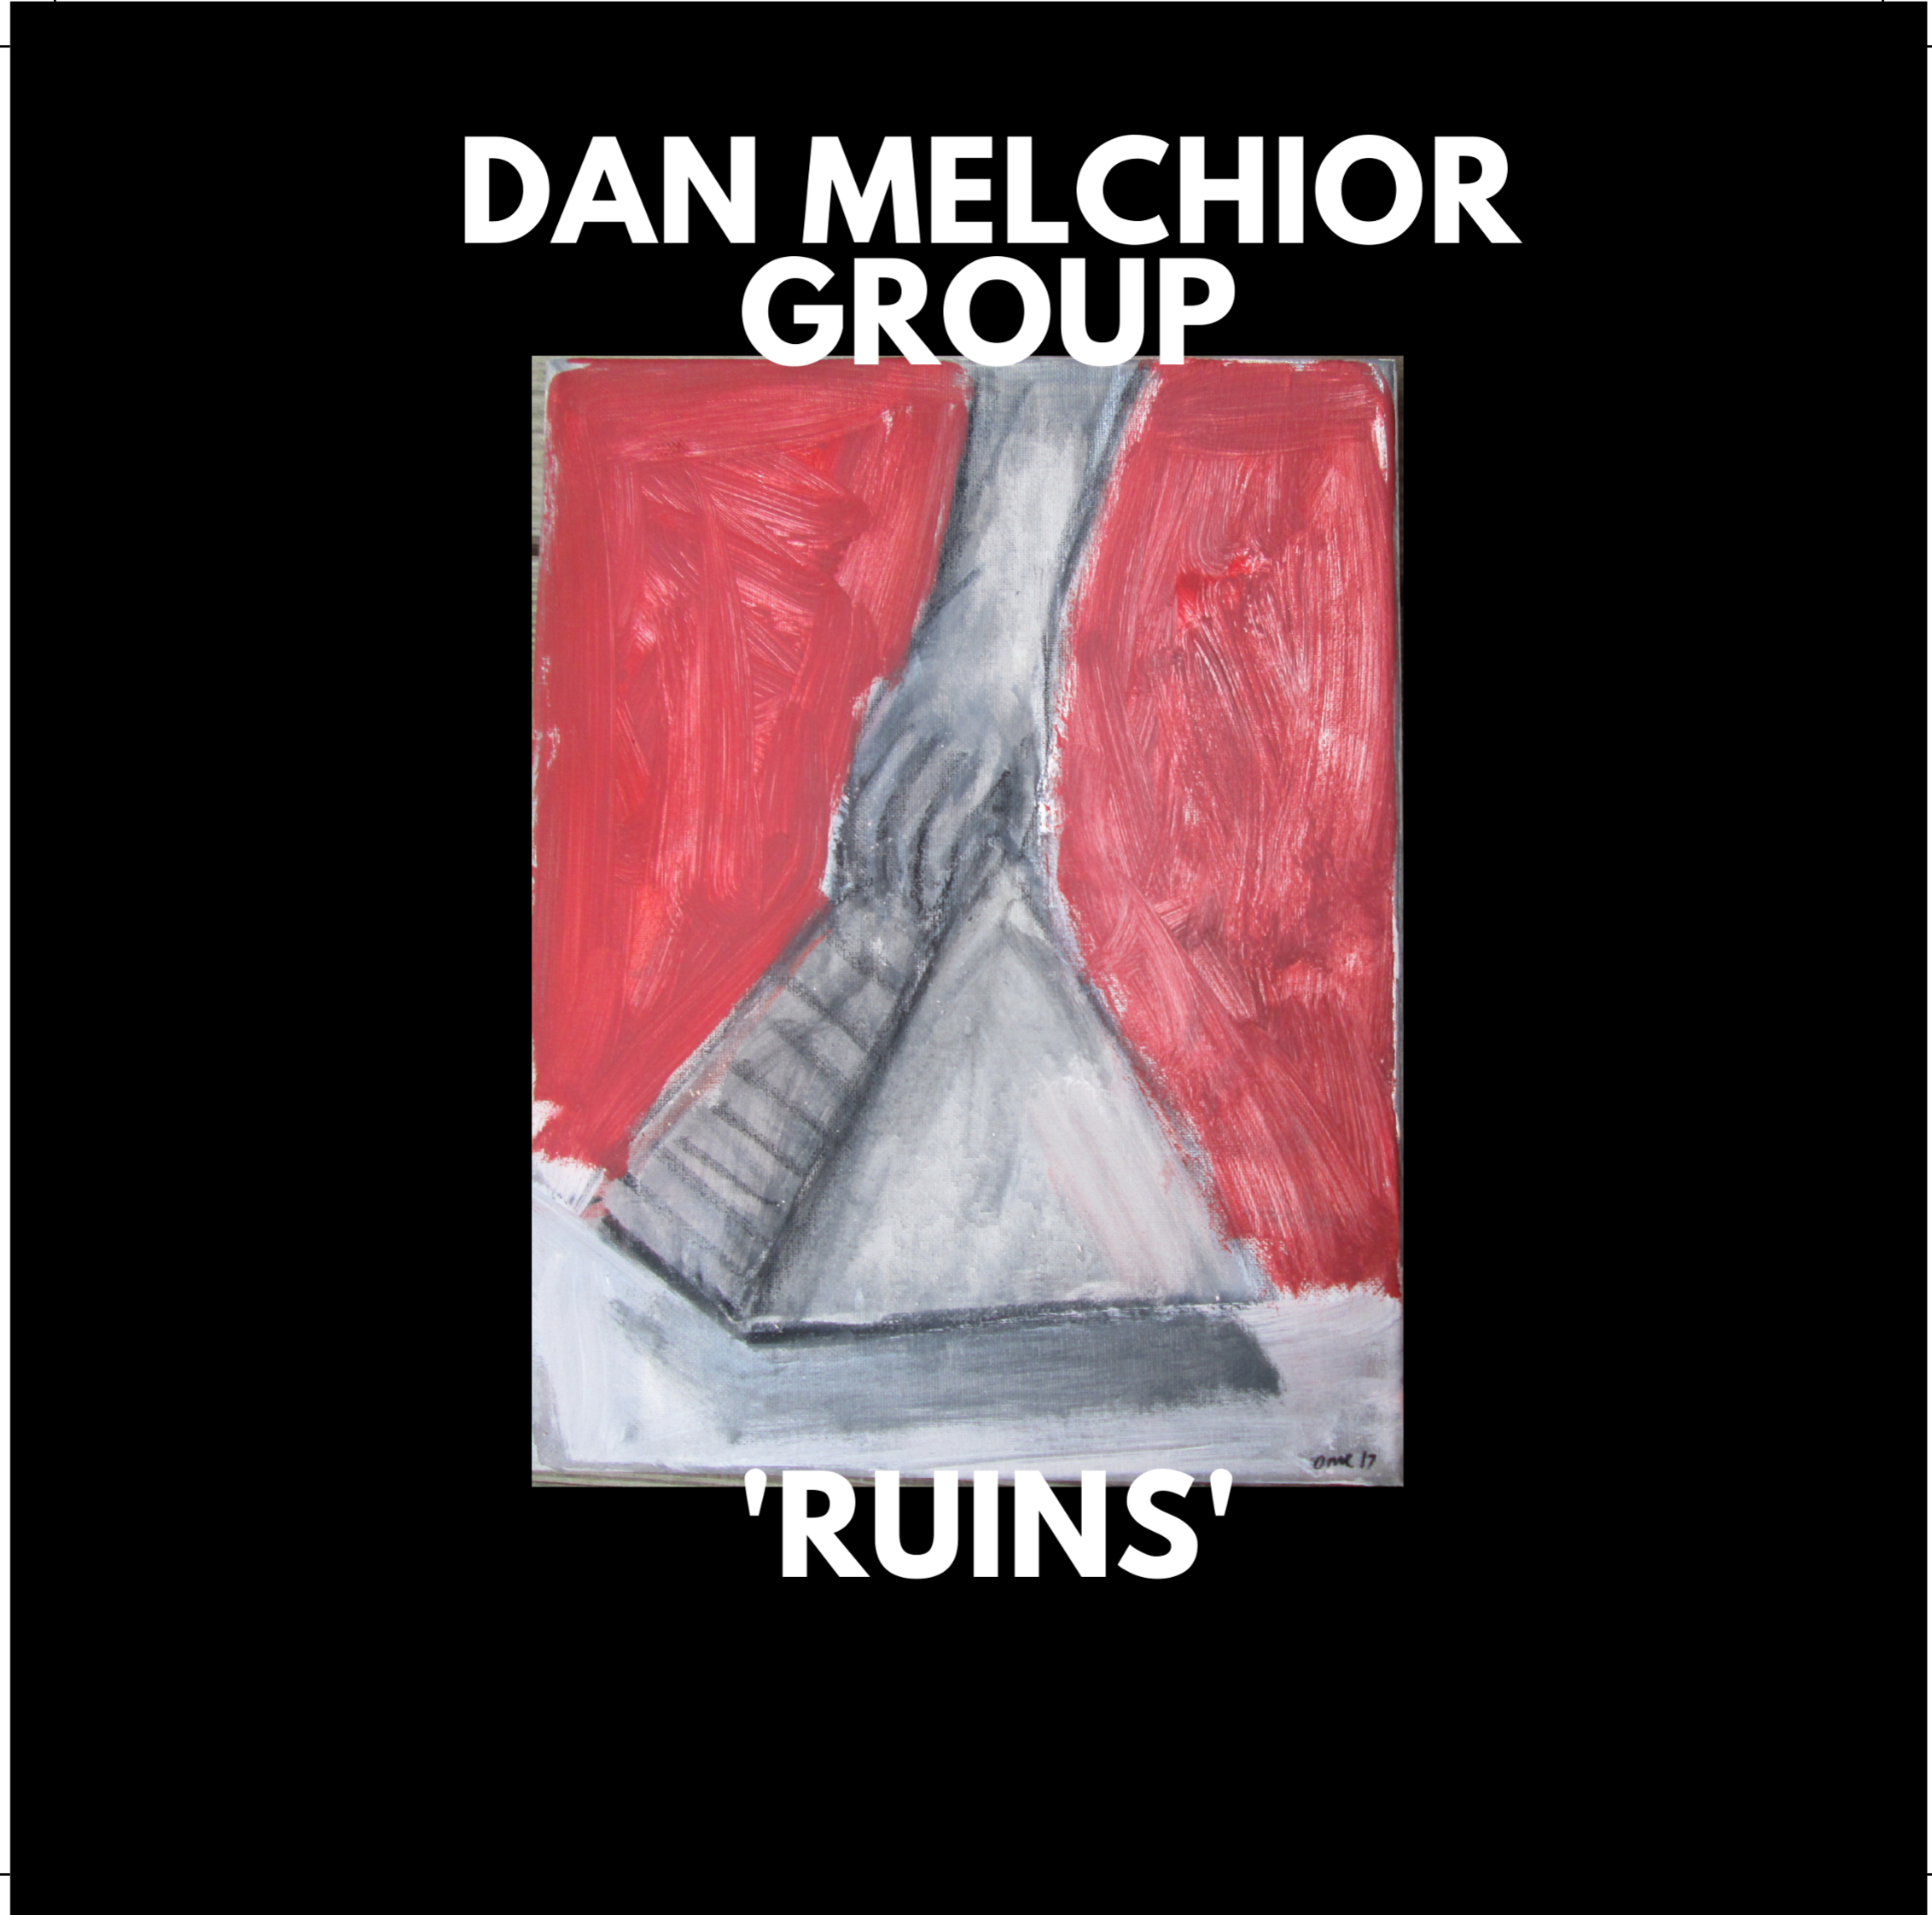 OUT Oct 25th! Dan Melchior Group - Ruins 2xLP - Dan backed by 2/3 of Bloody Show!